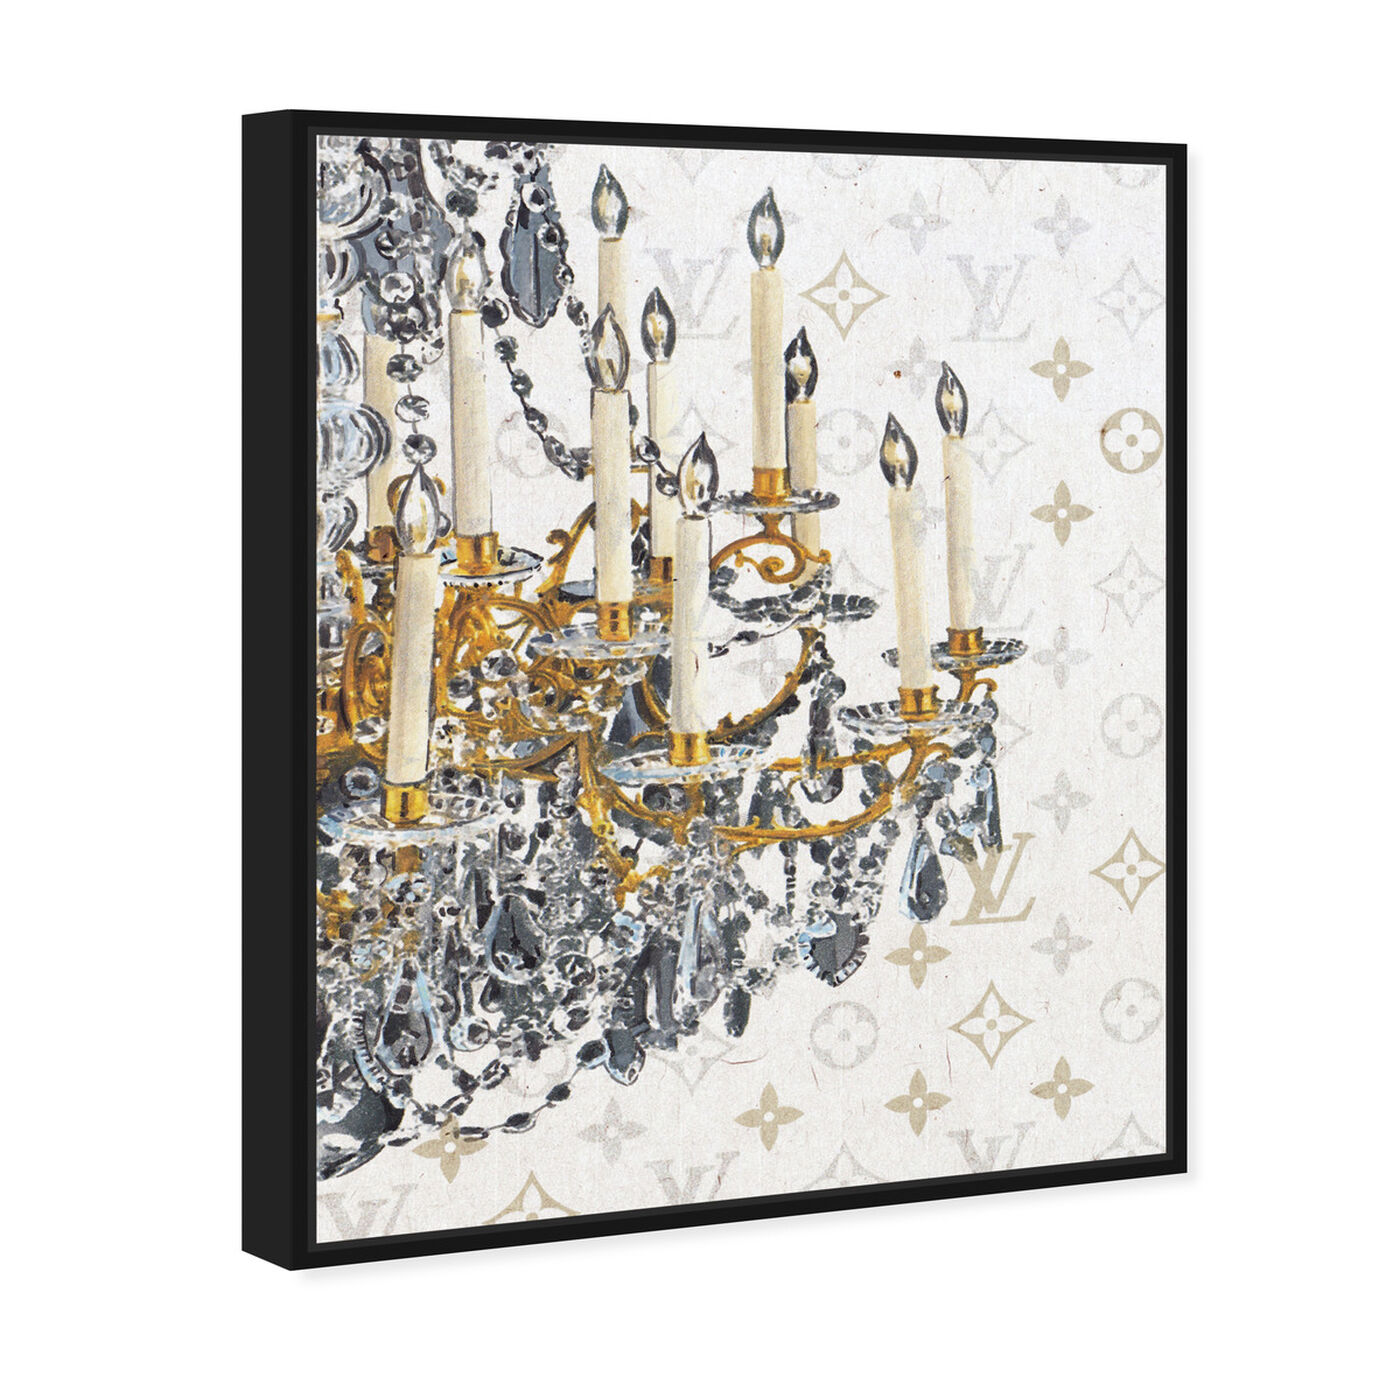 Angled view of Fancy Light II featuring fashion and glam and chandeliers art.